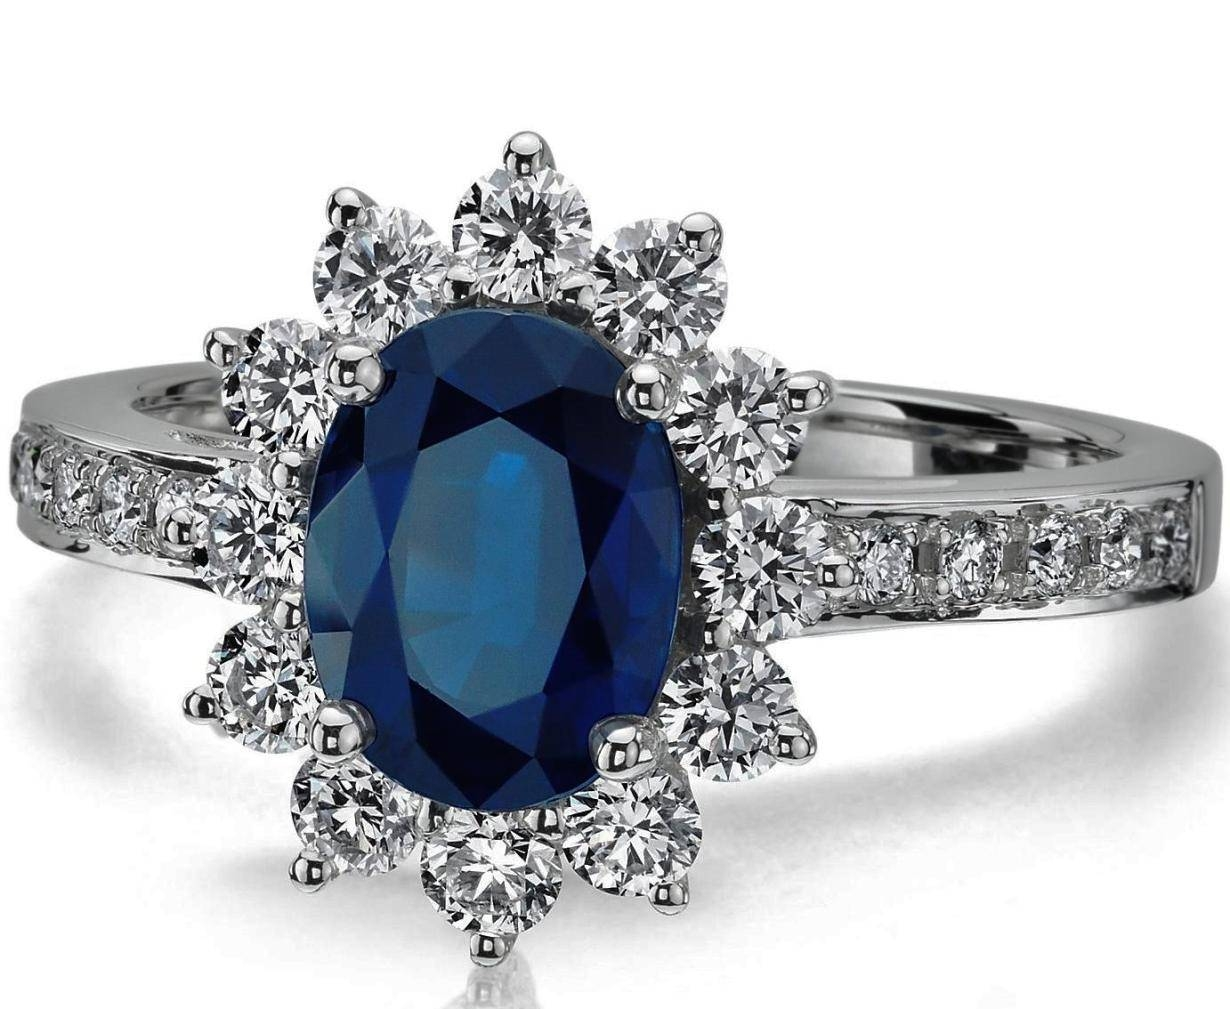 Engagement Rings : Gemstone Rings Stunning Engagement Rings Blue Inside Wedding Rings With Diamonds And Sapphires (View 5 of 15)